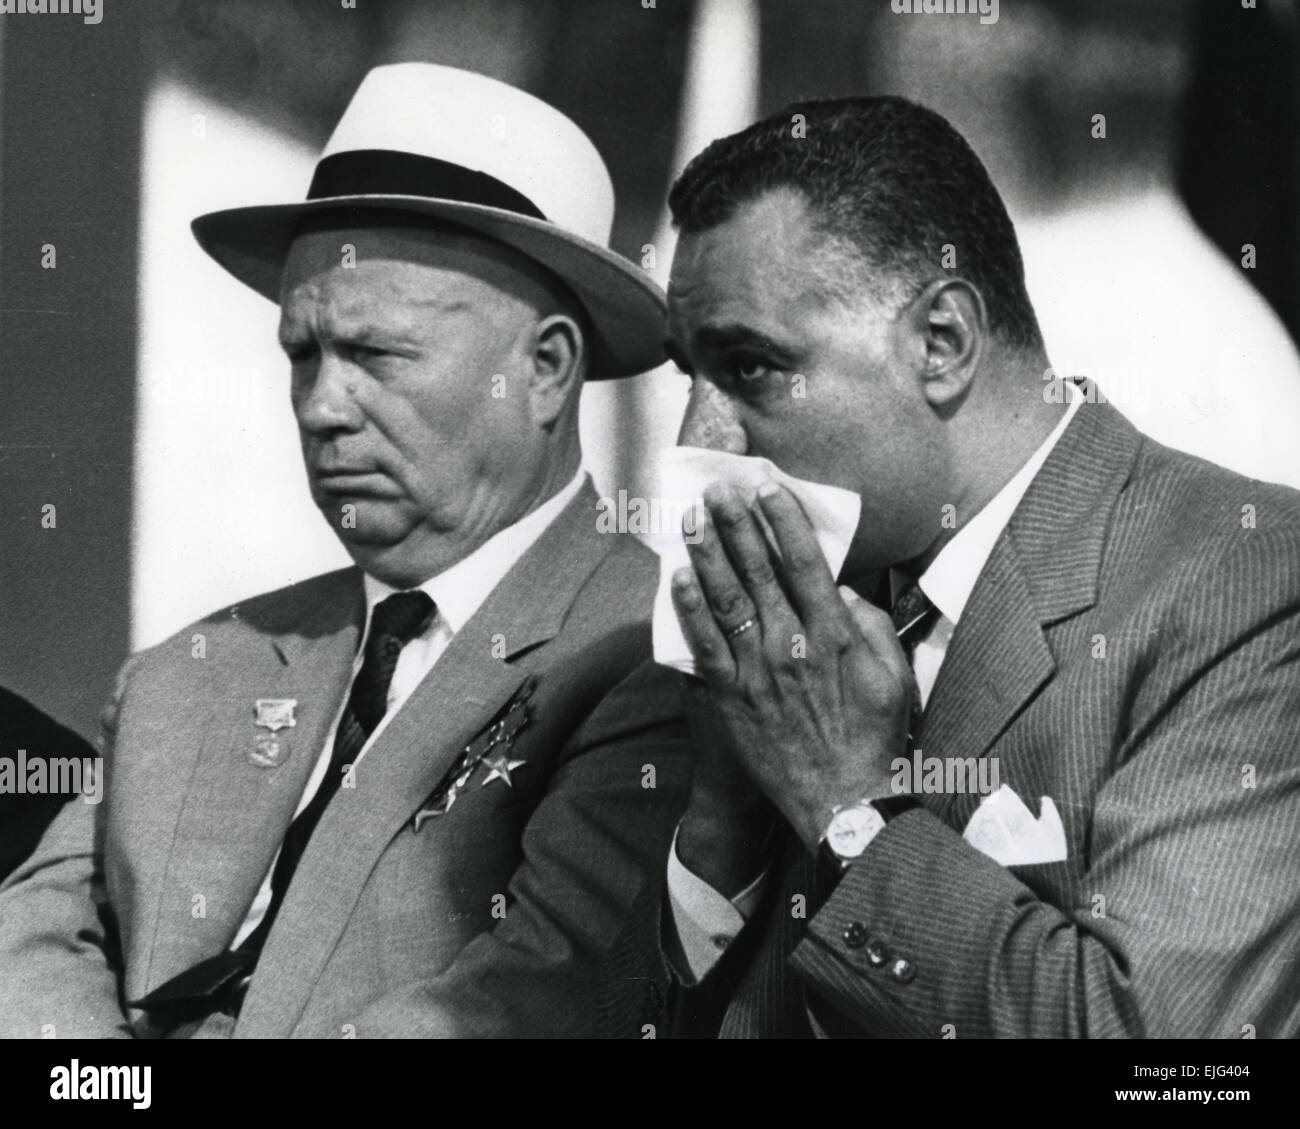 ABDUL NASSER, Egyptian President at left with Soviet leader Nikita Khrushchev on 14 May 1964 watching the diversion - Stock Image